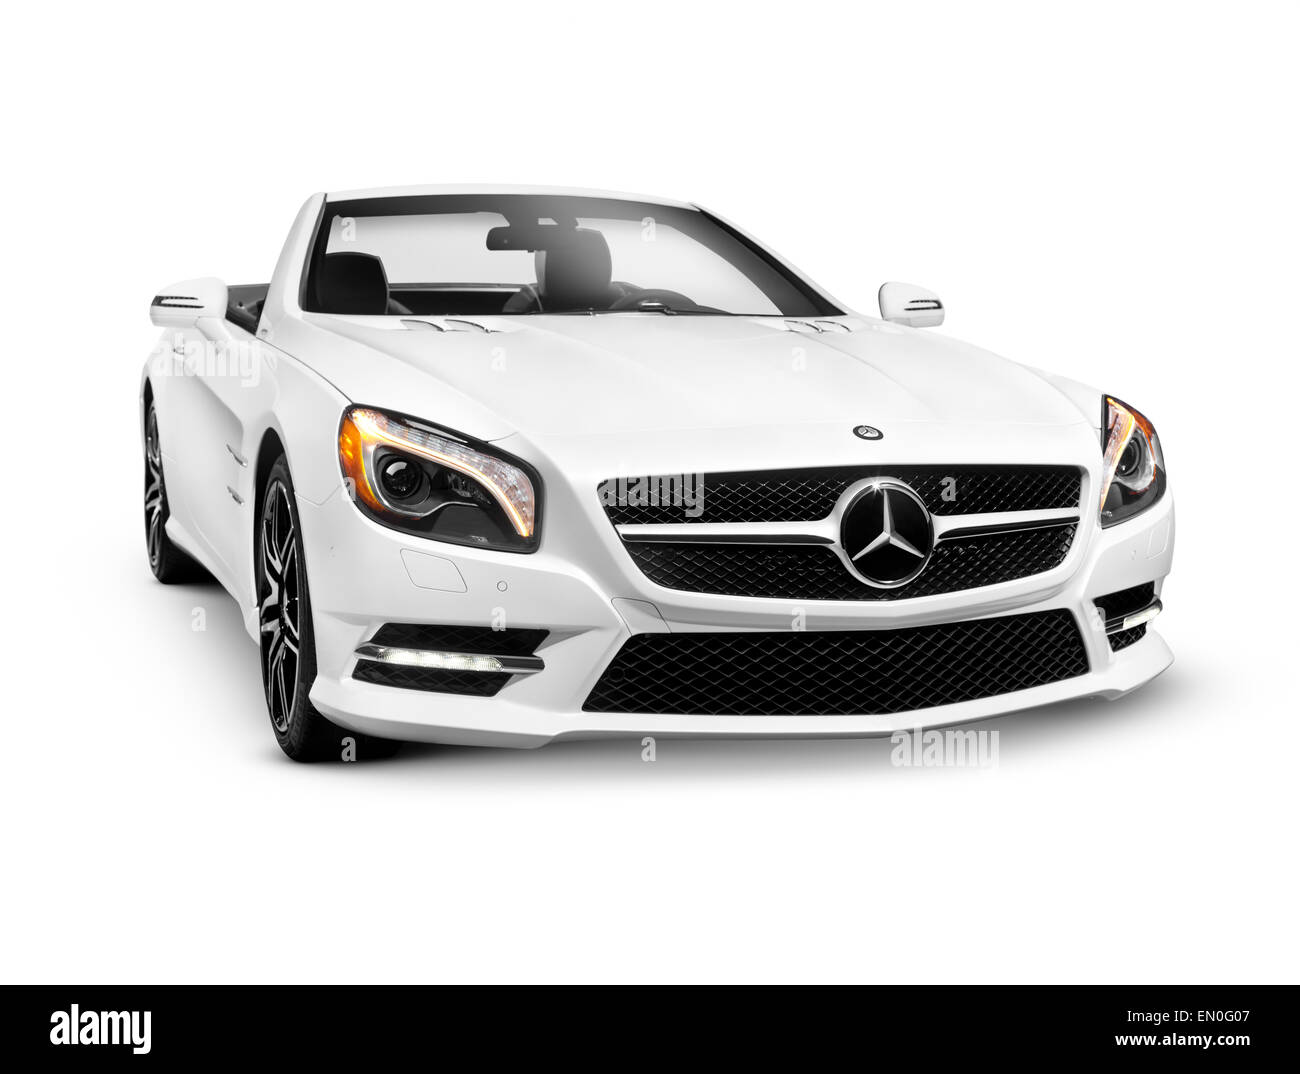 White 2015 Mercedes-Benz SL550 Roadster Convertible 2LOOK